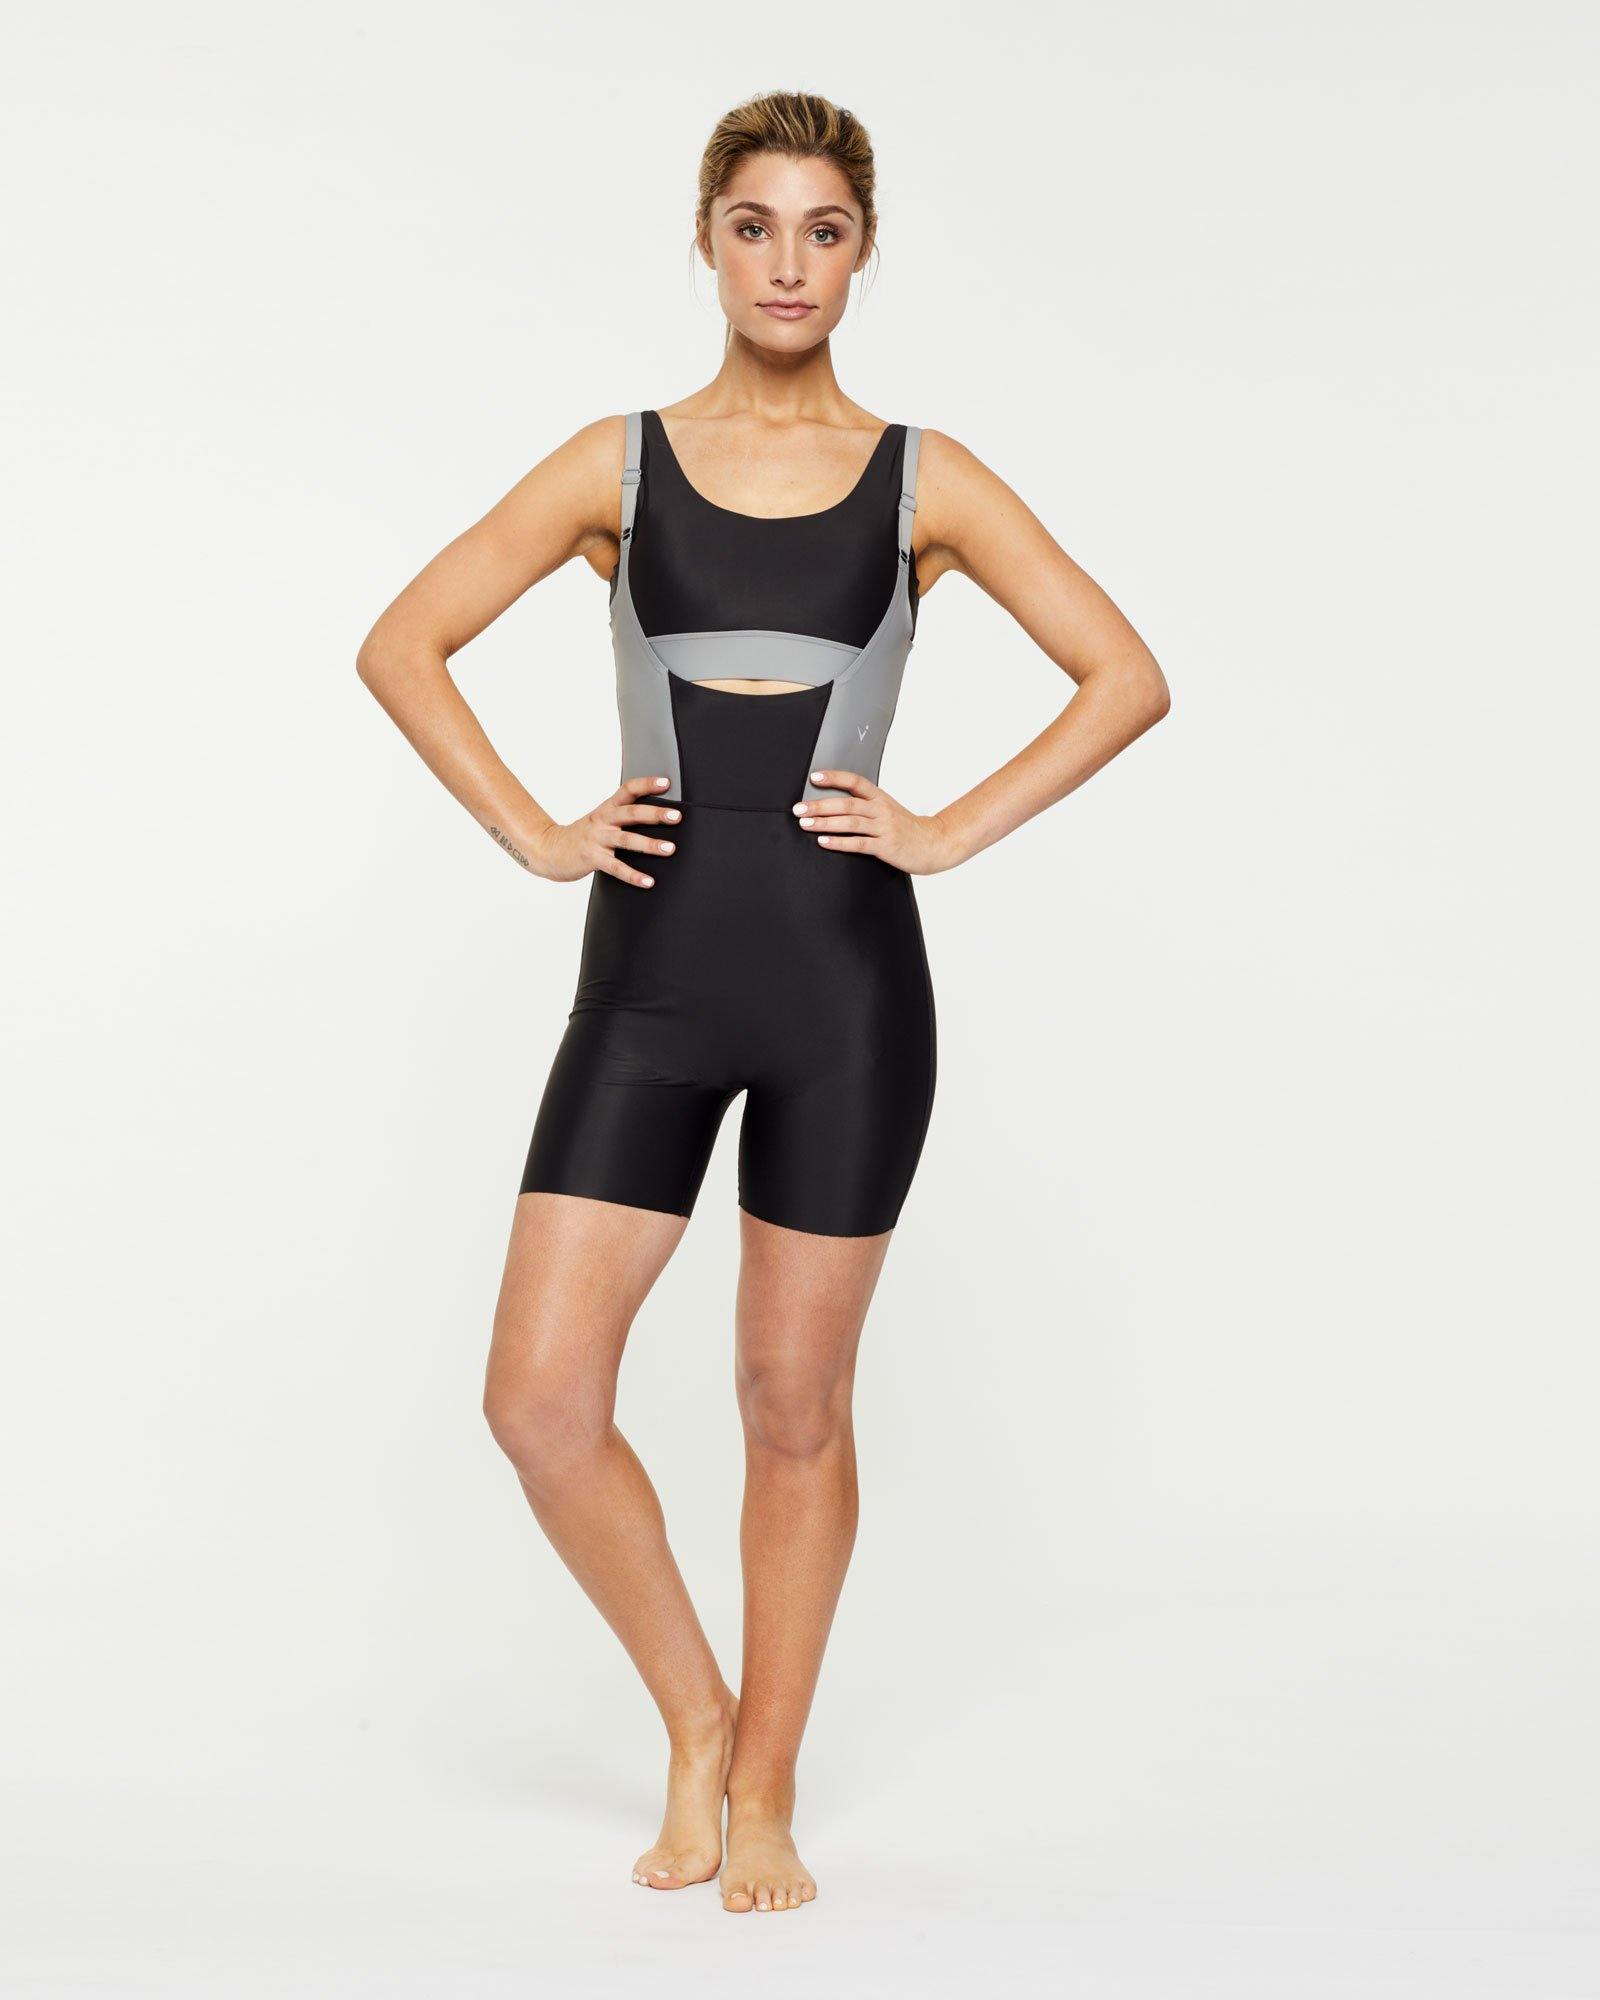 Steely Rectus short Bodysuit worn low front over Pectoralis active top and high back, front view